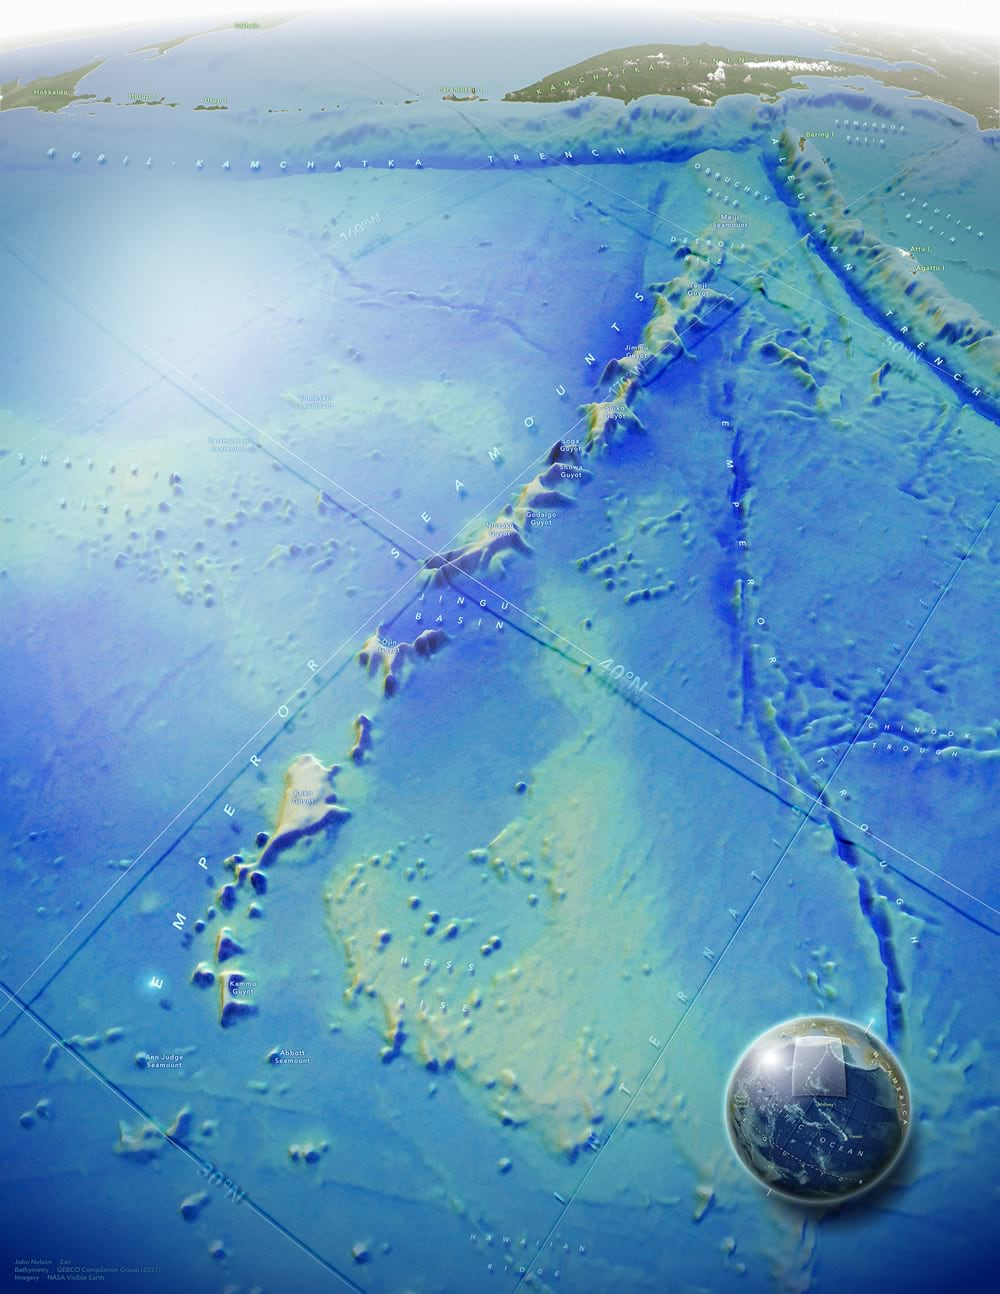 Map of the Emperor Seamounts in the northern Pacific ocean.